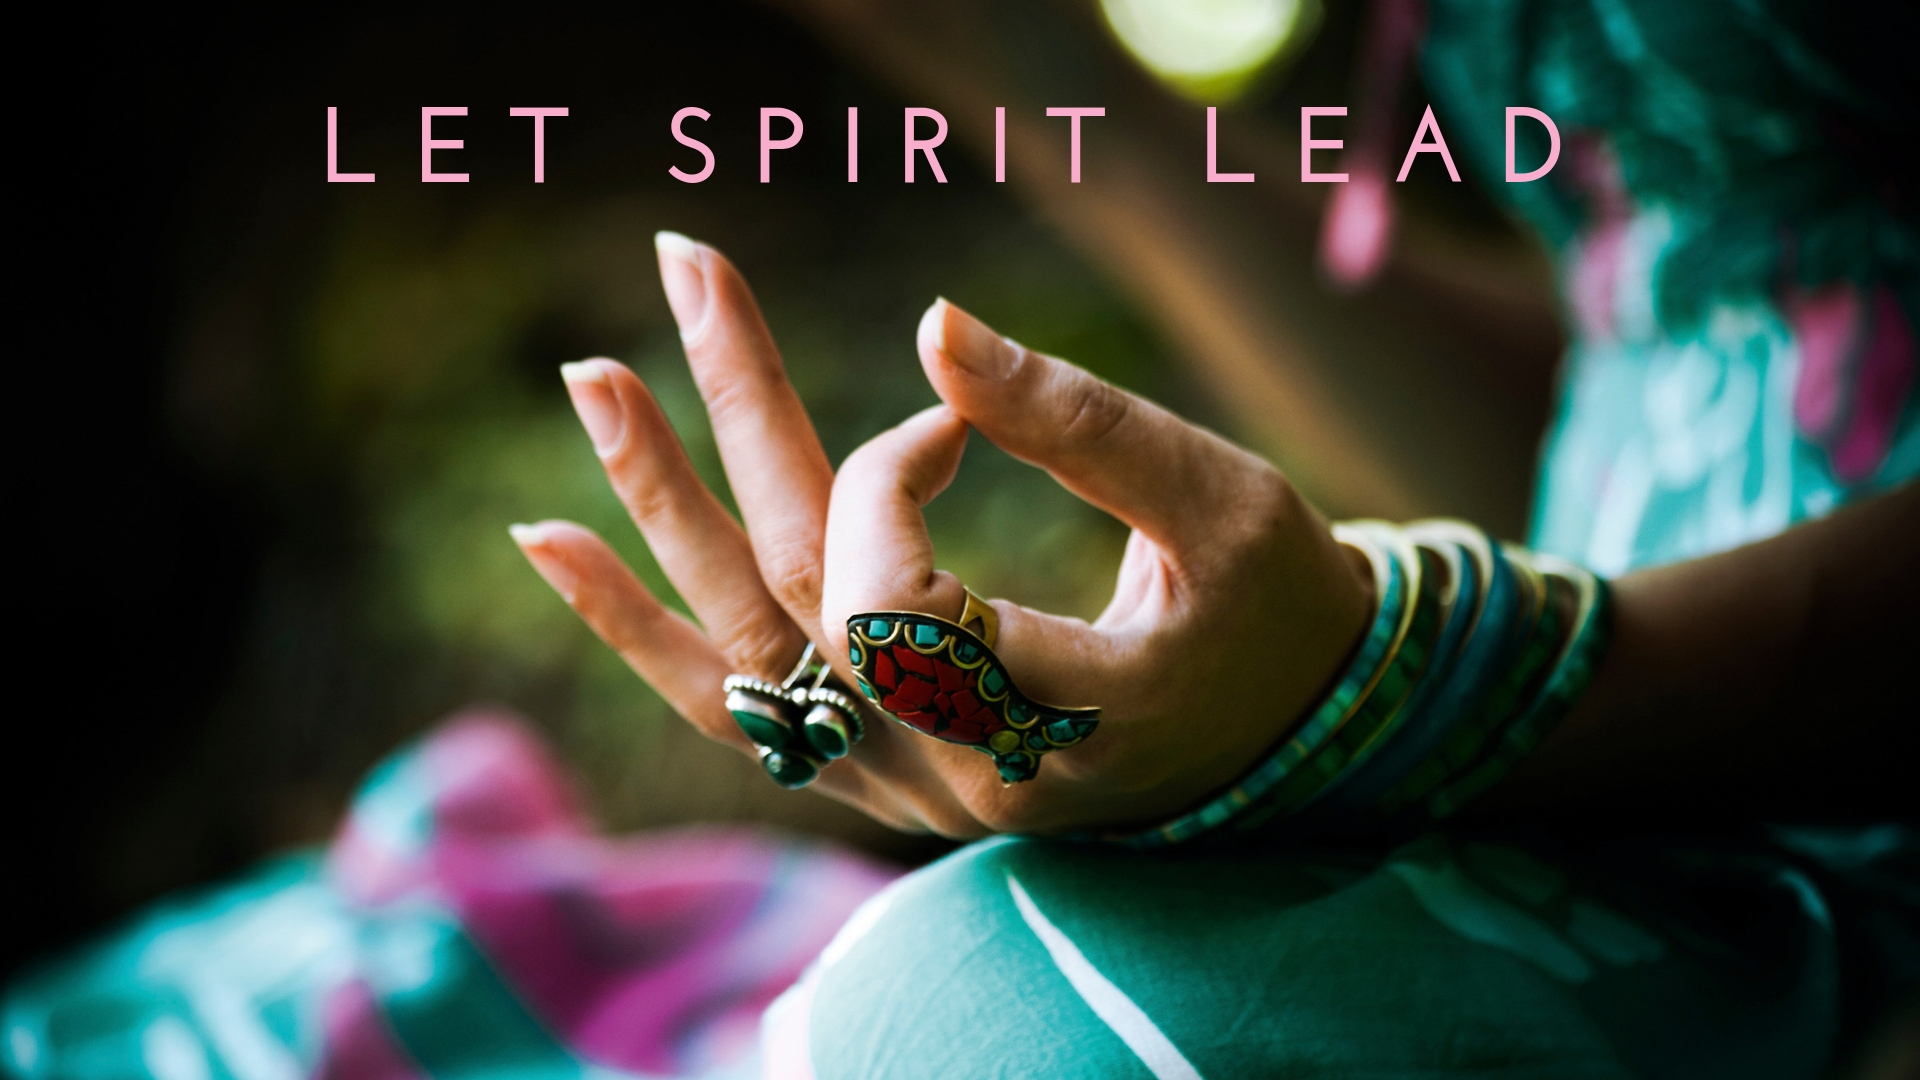 Let spirit lead - A guided morning meditation with Cissi Williams to help you connect with Spirit, so you can let Spirit lead.